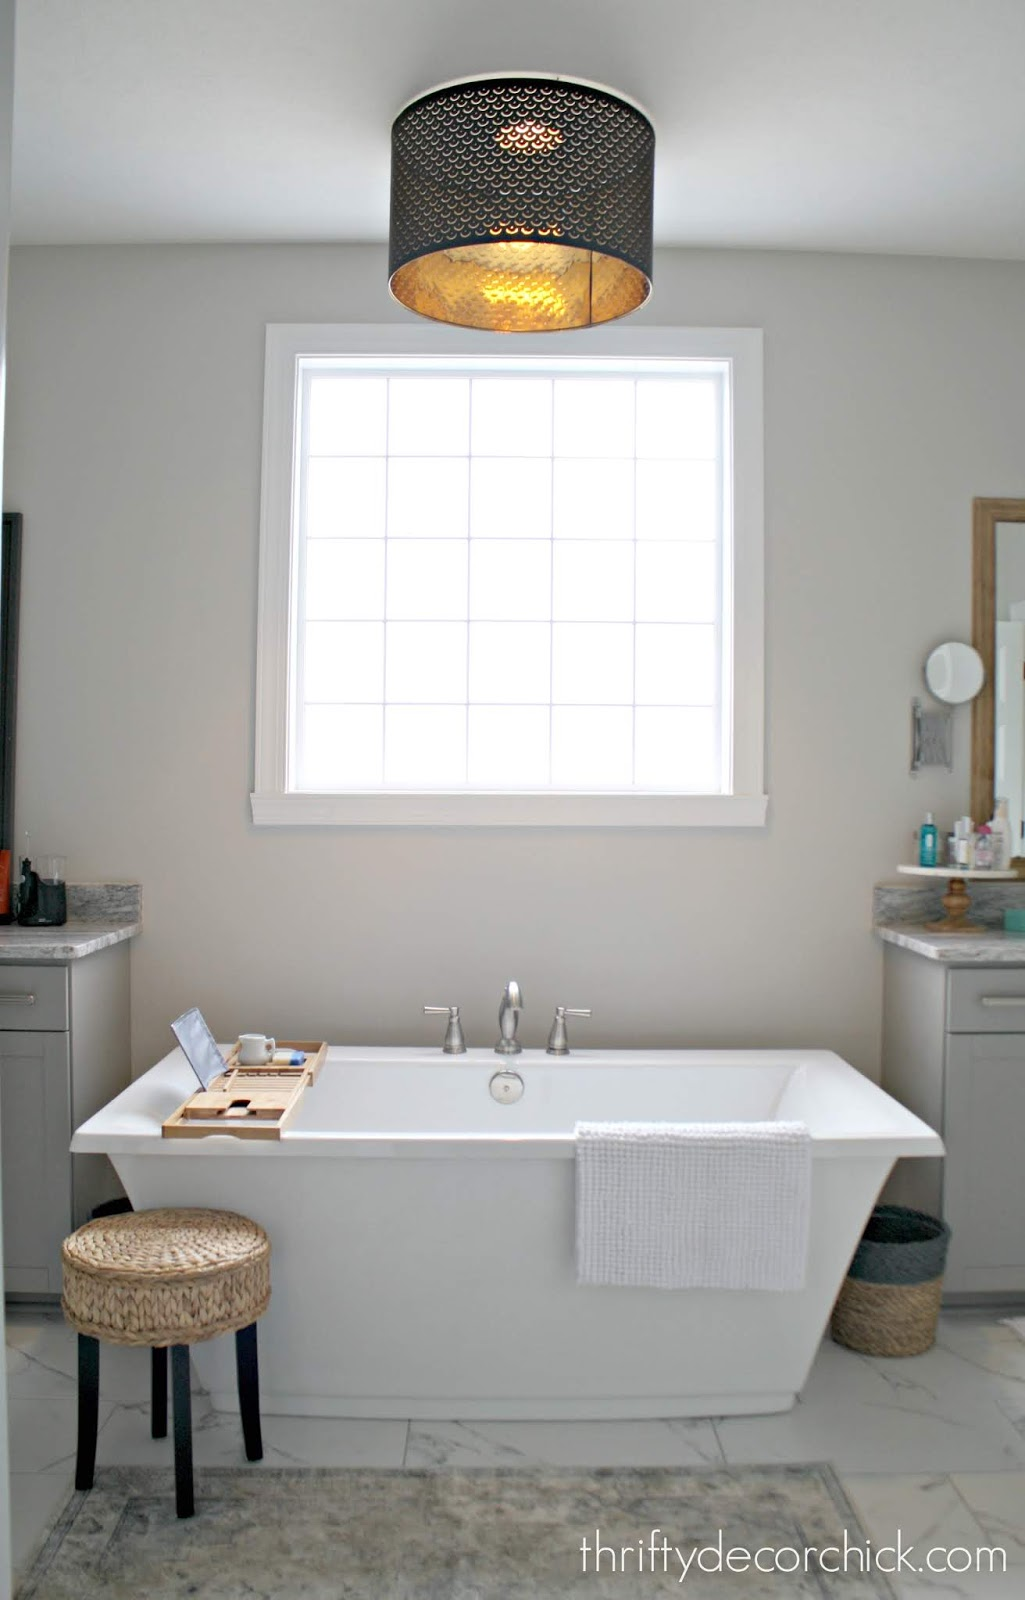 DIY faux pendant over tub